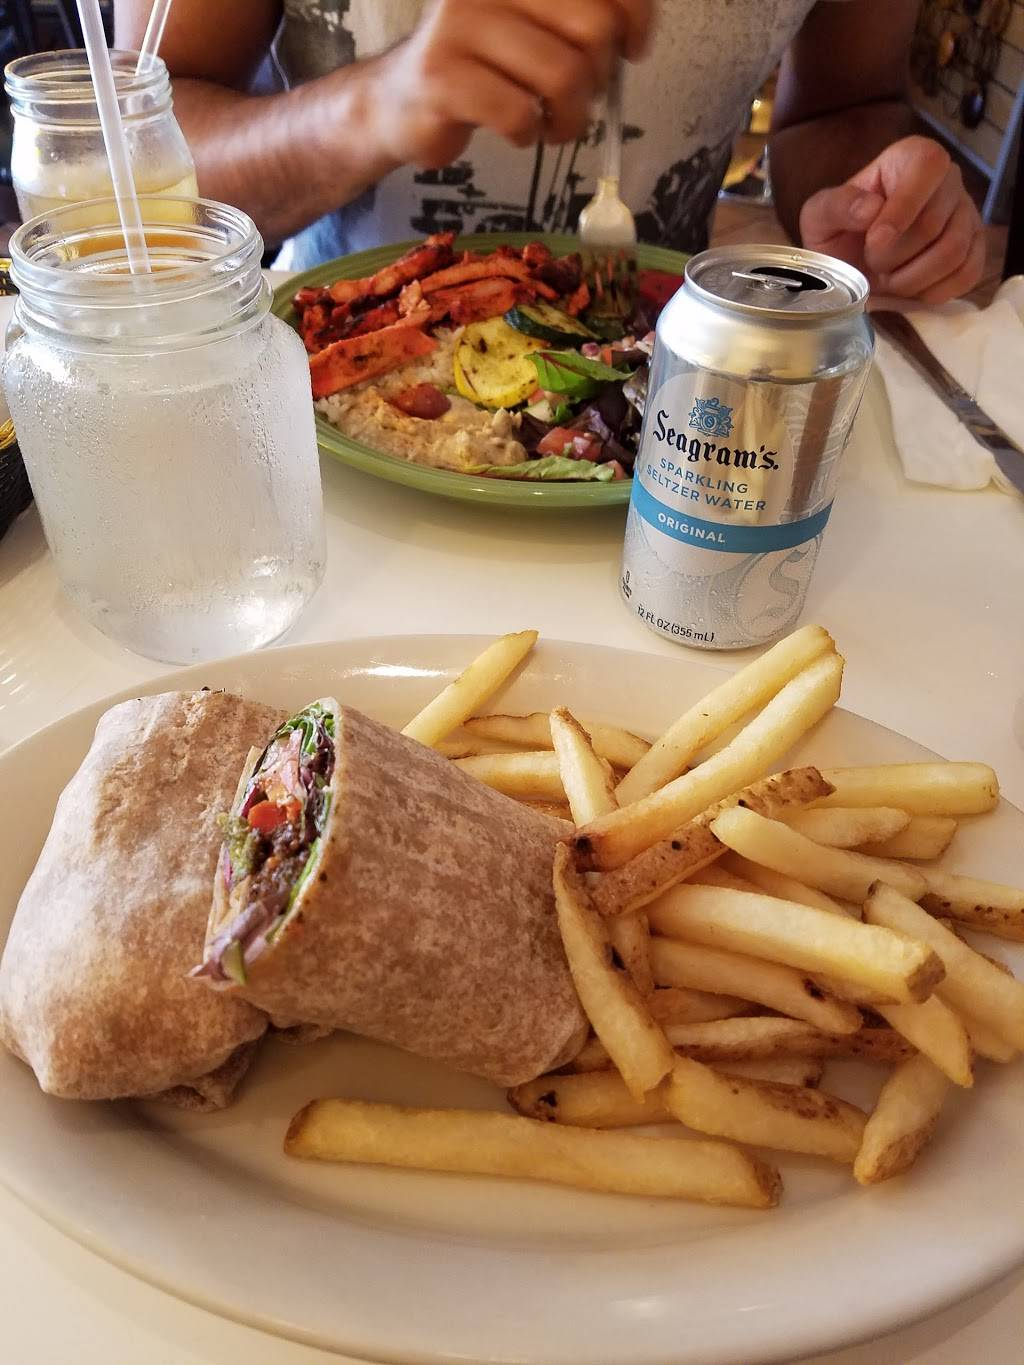 Garbanzo Grill | meal delivery | 3706 Park Ave, Weehawken, NJ 07086, USA | 2017664012 OR +1 201-766-4012